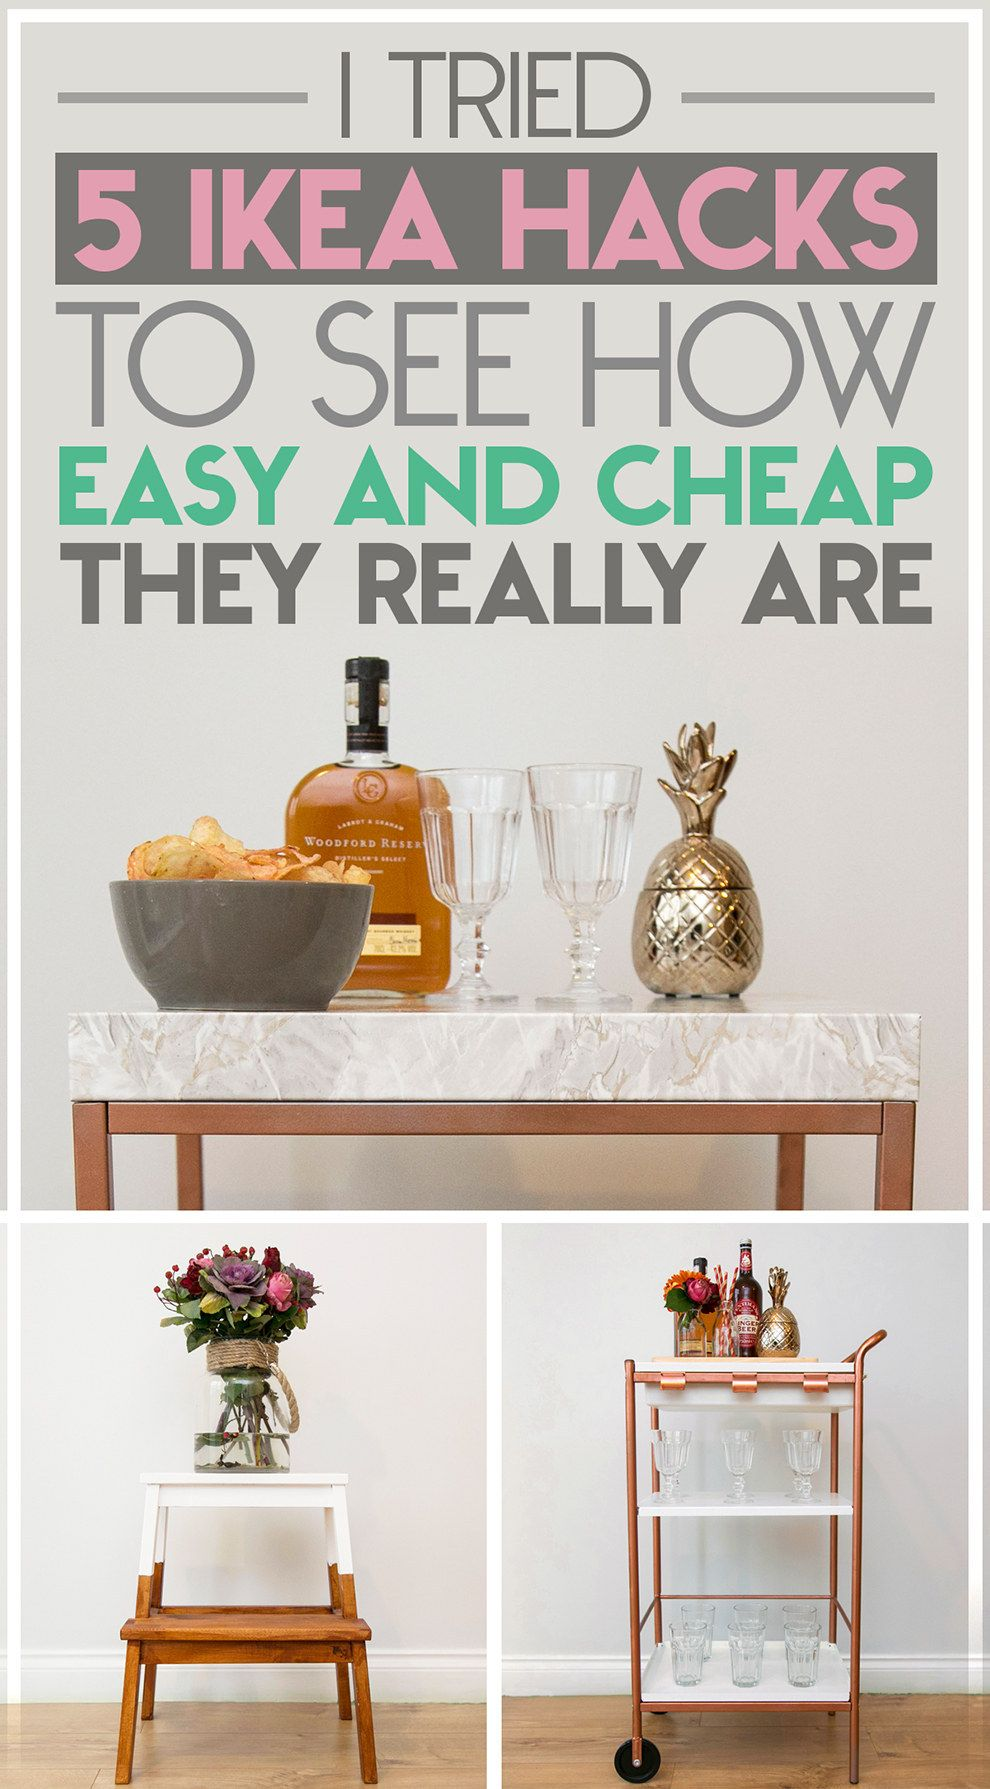 I Tried 5 Ikea Hacks To See How Cheap And Easy They Really Are ...